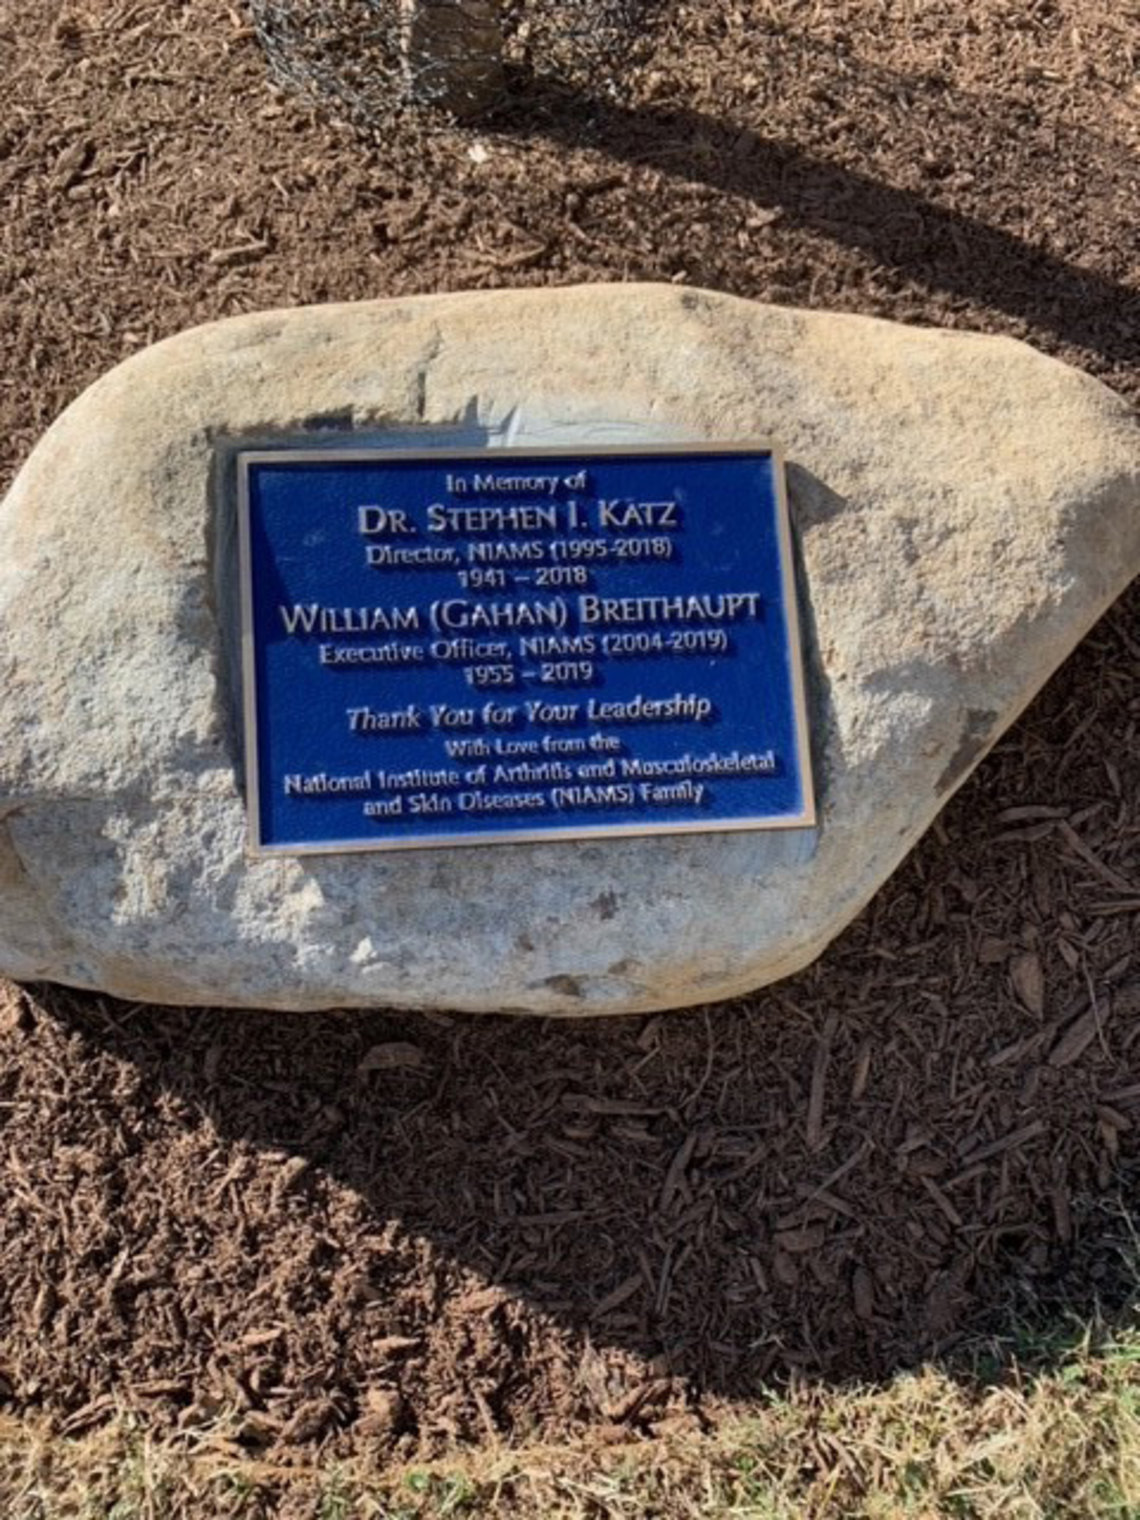 A view of the plaque